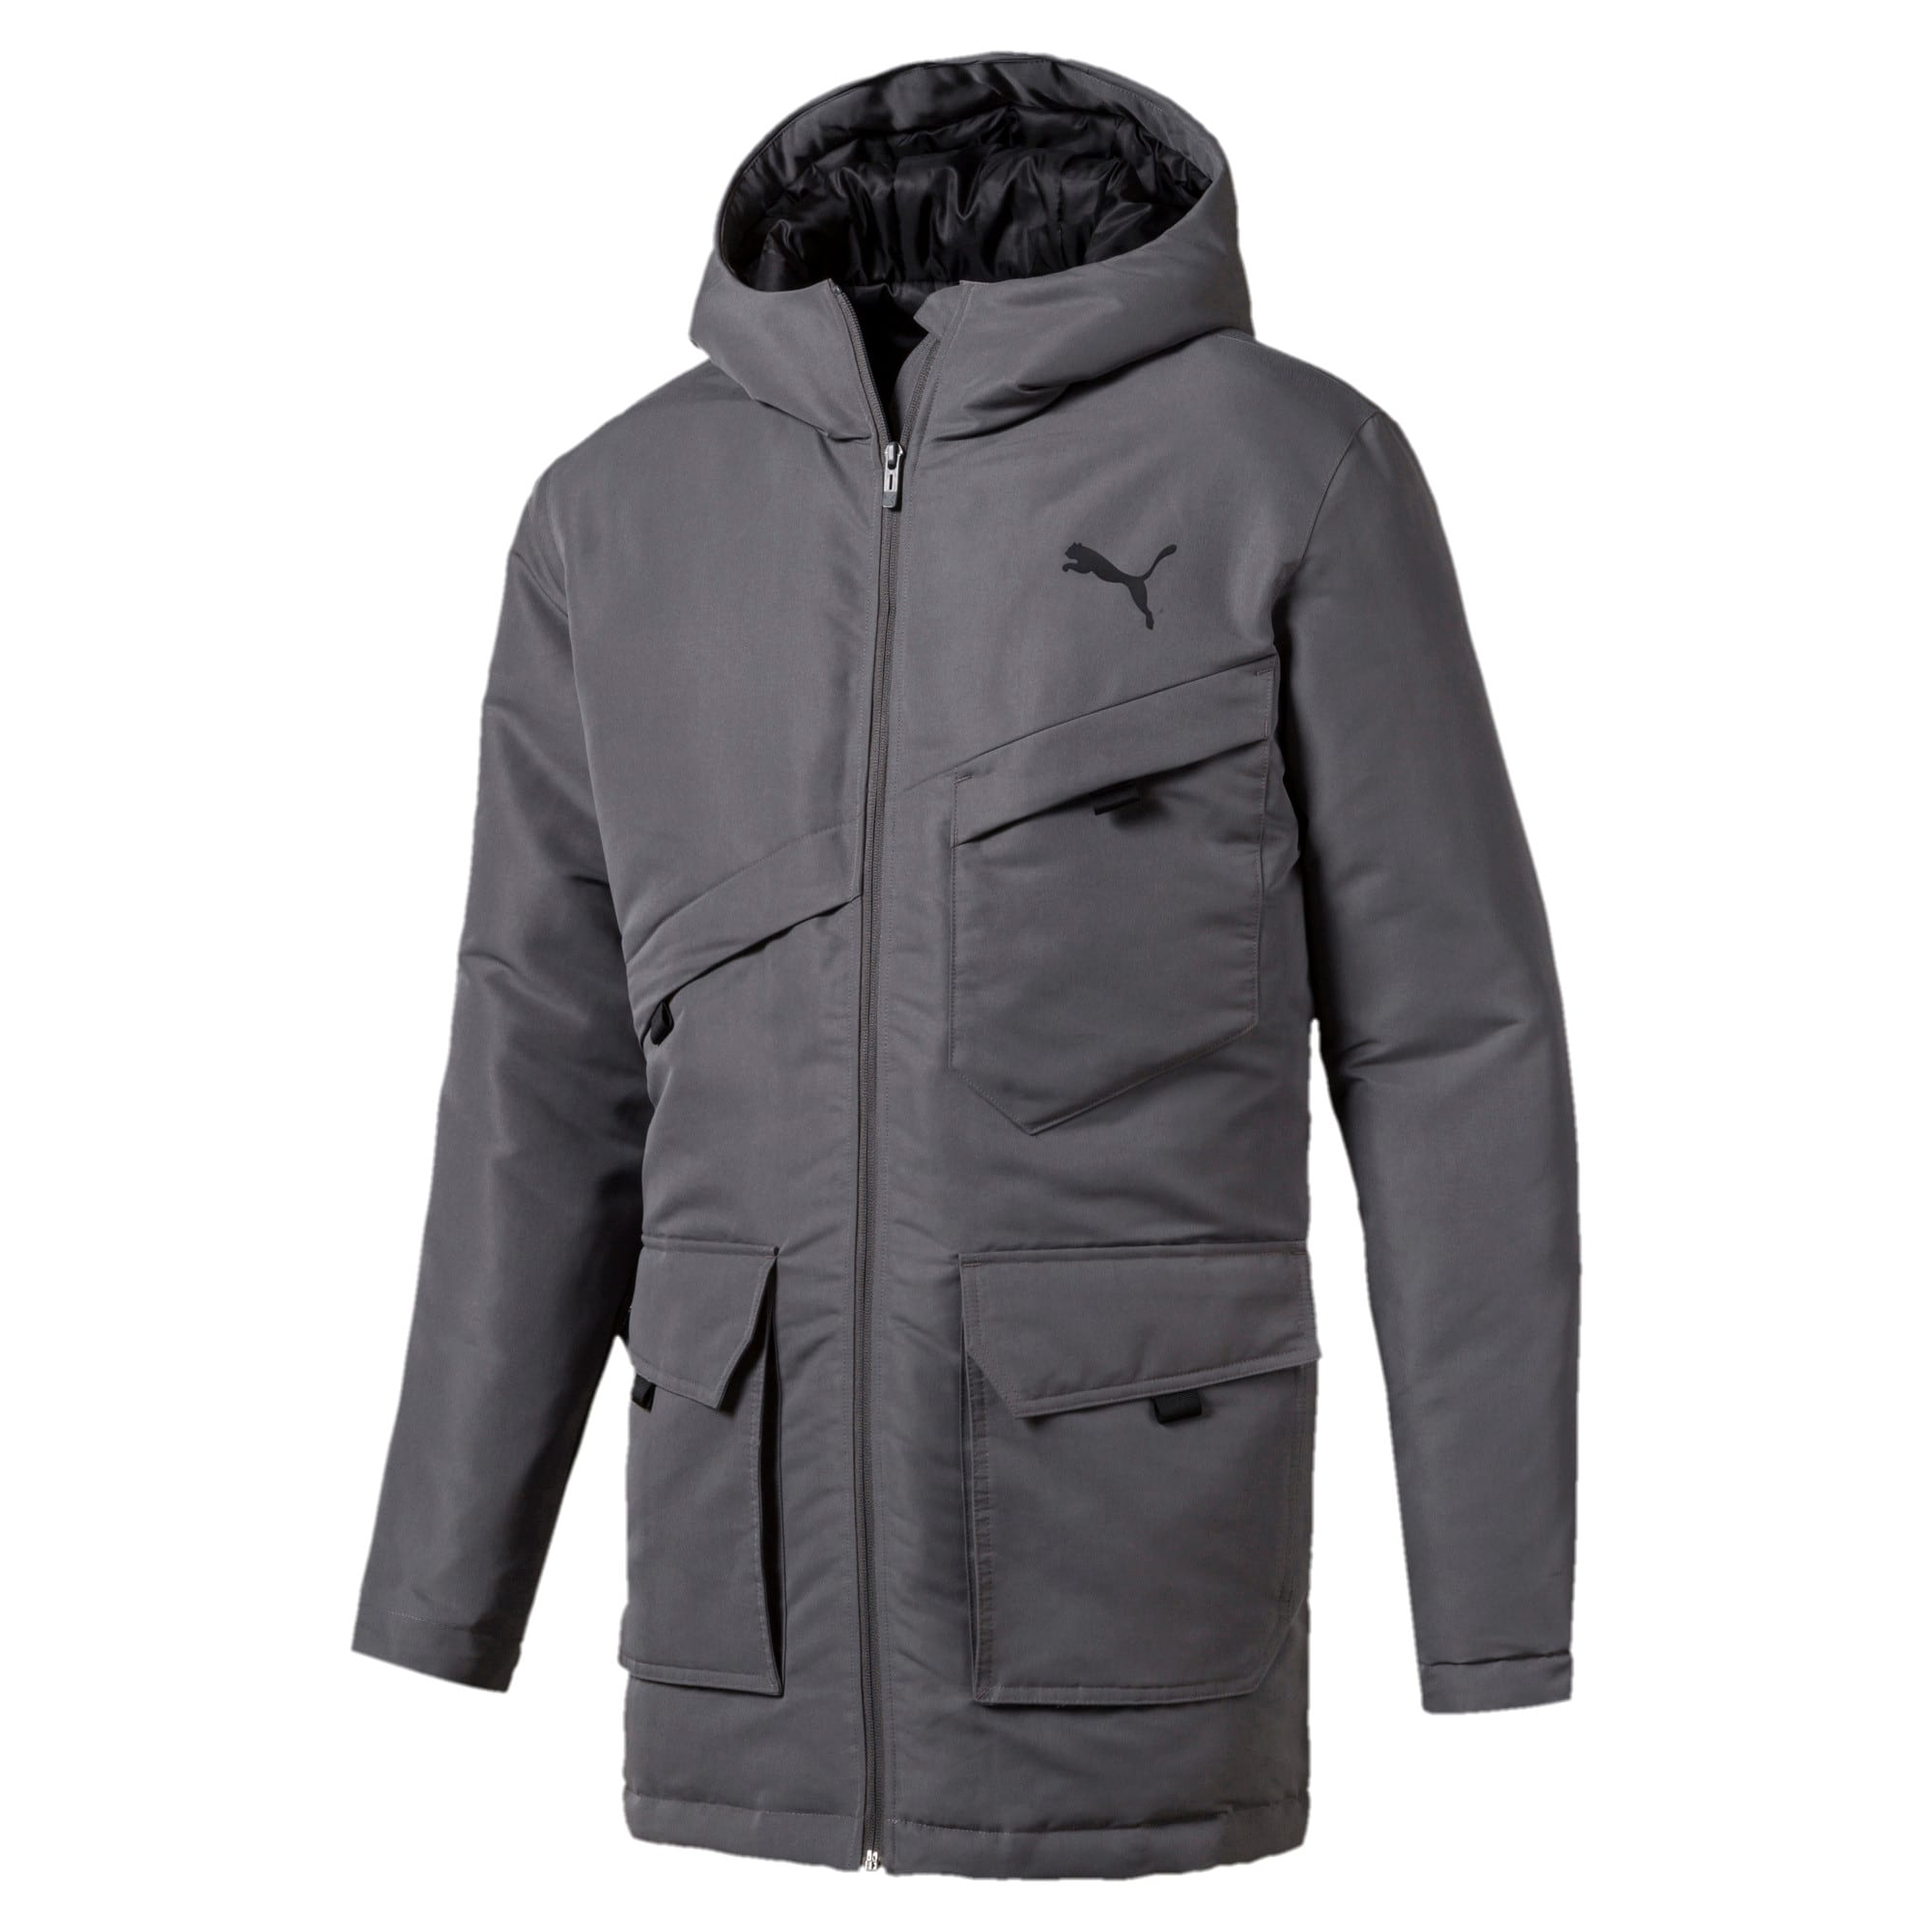 Thumbnail 1 of Essentials Protect Men's Jacket, CASTLEROCK, medium